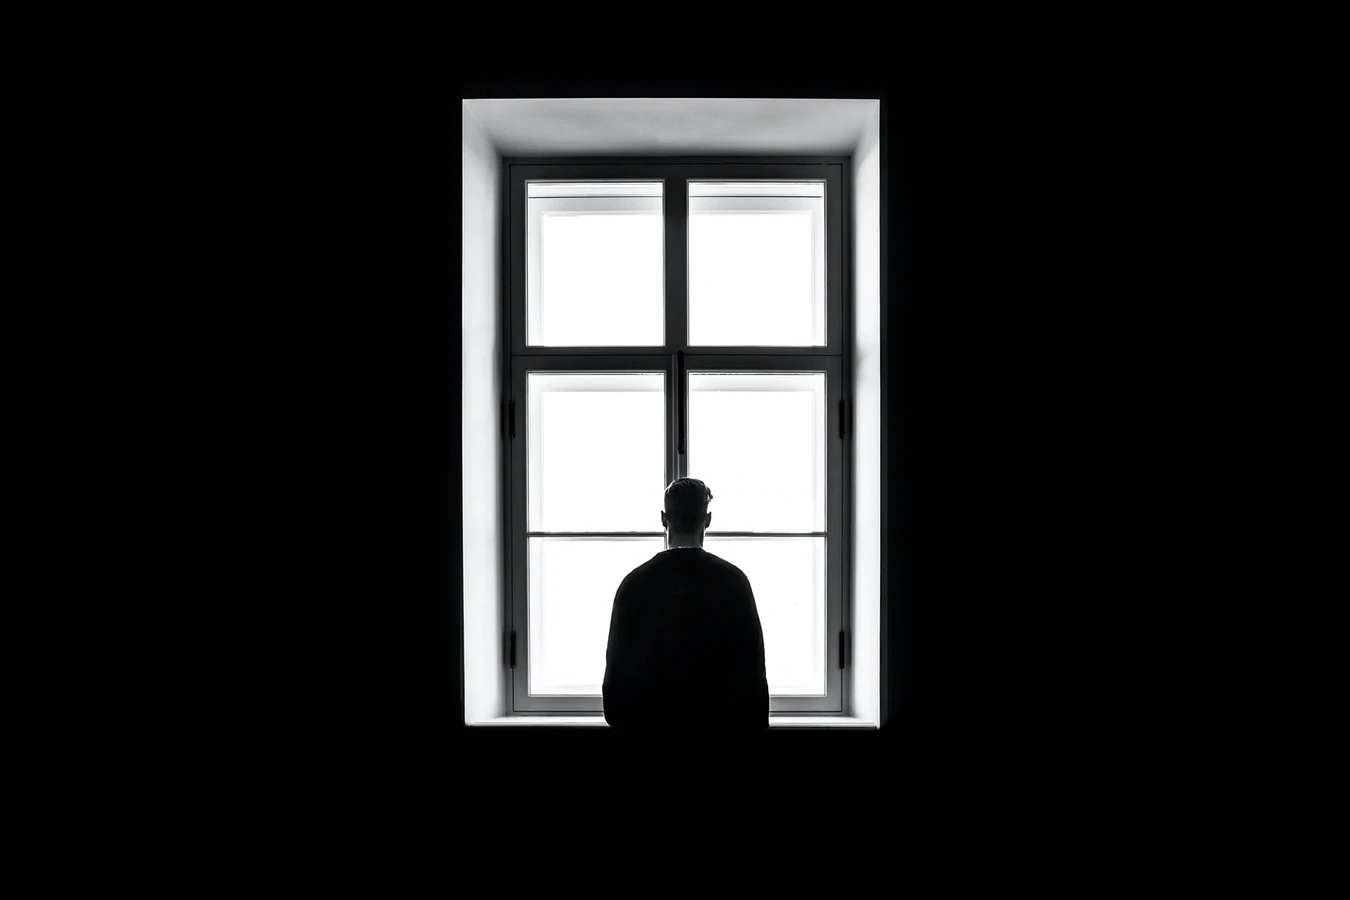 Lonely person in dark room looking through window